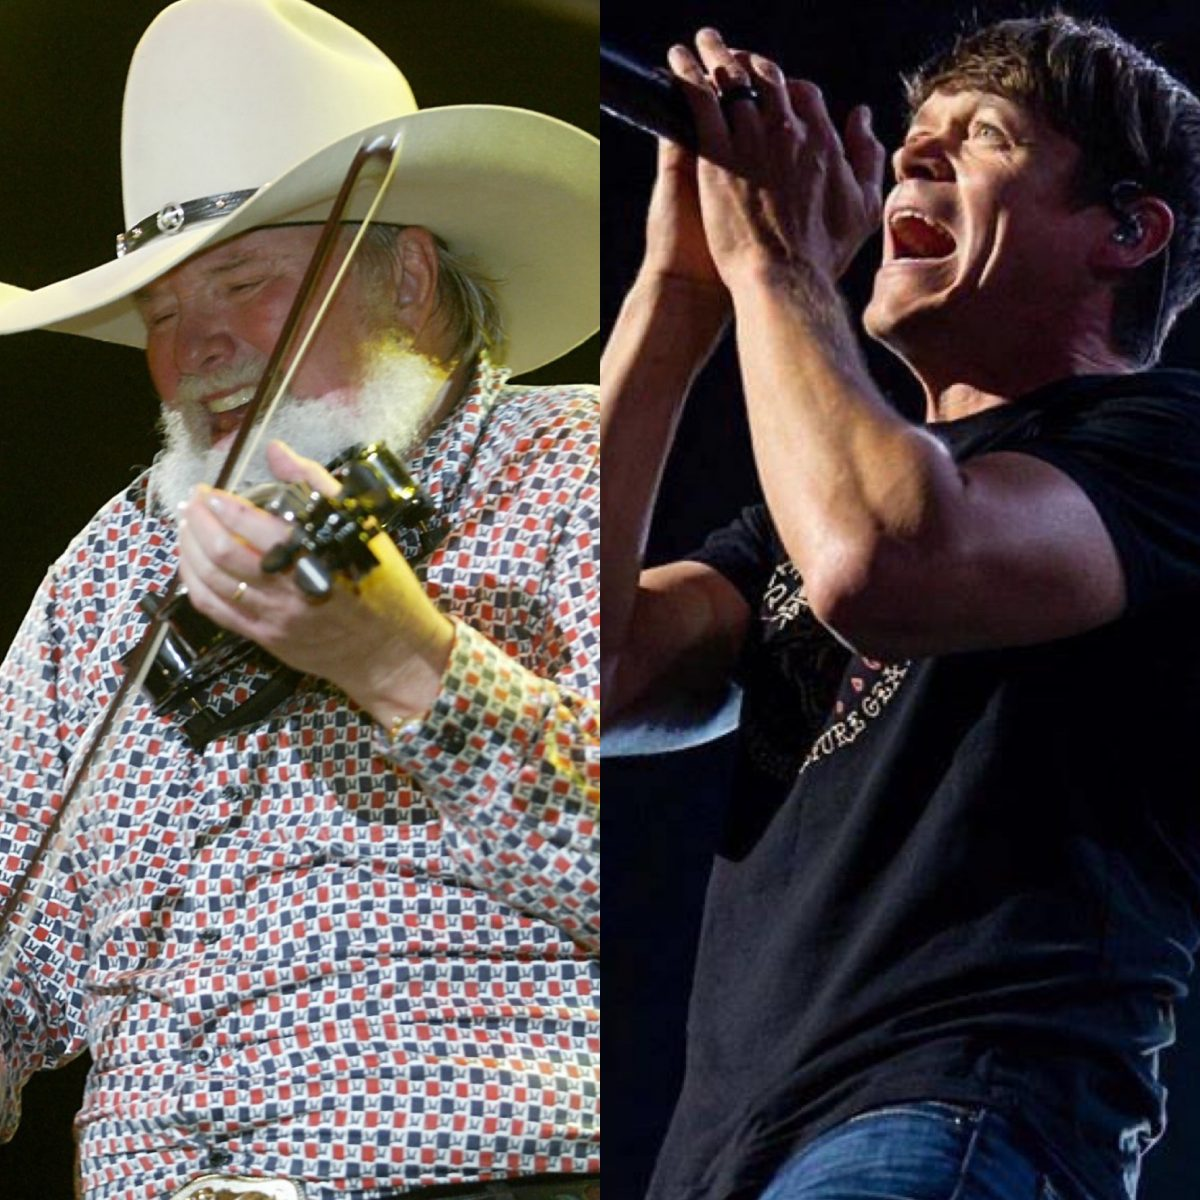 Brad Arnold of 3 Doors Down reflects on Charlie Daniels saving his life